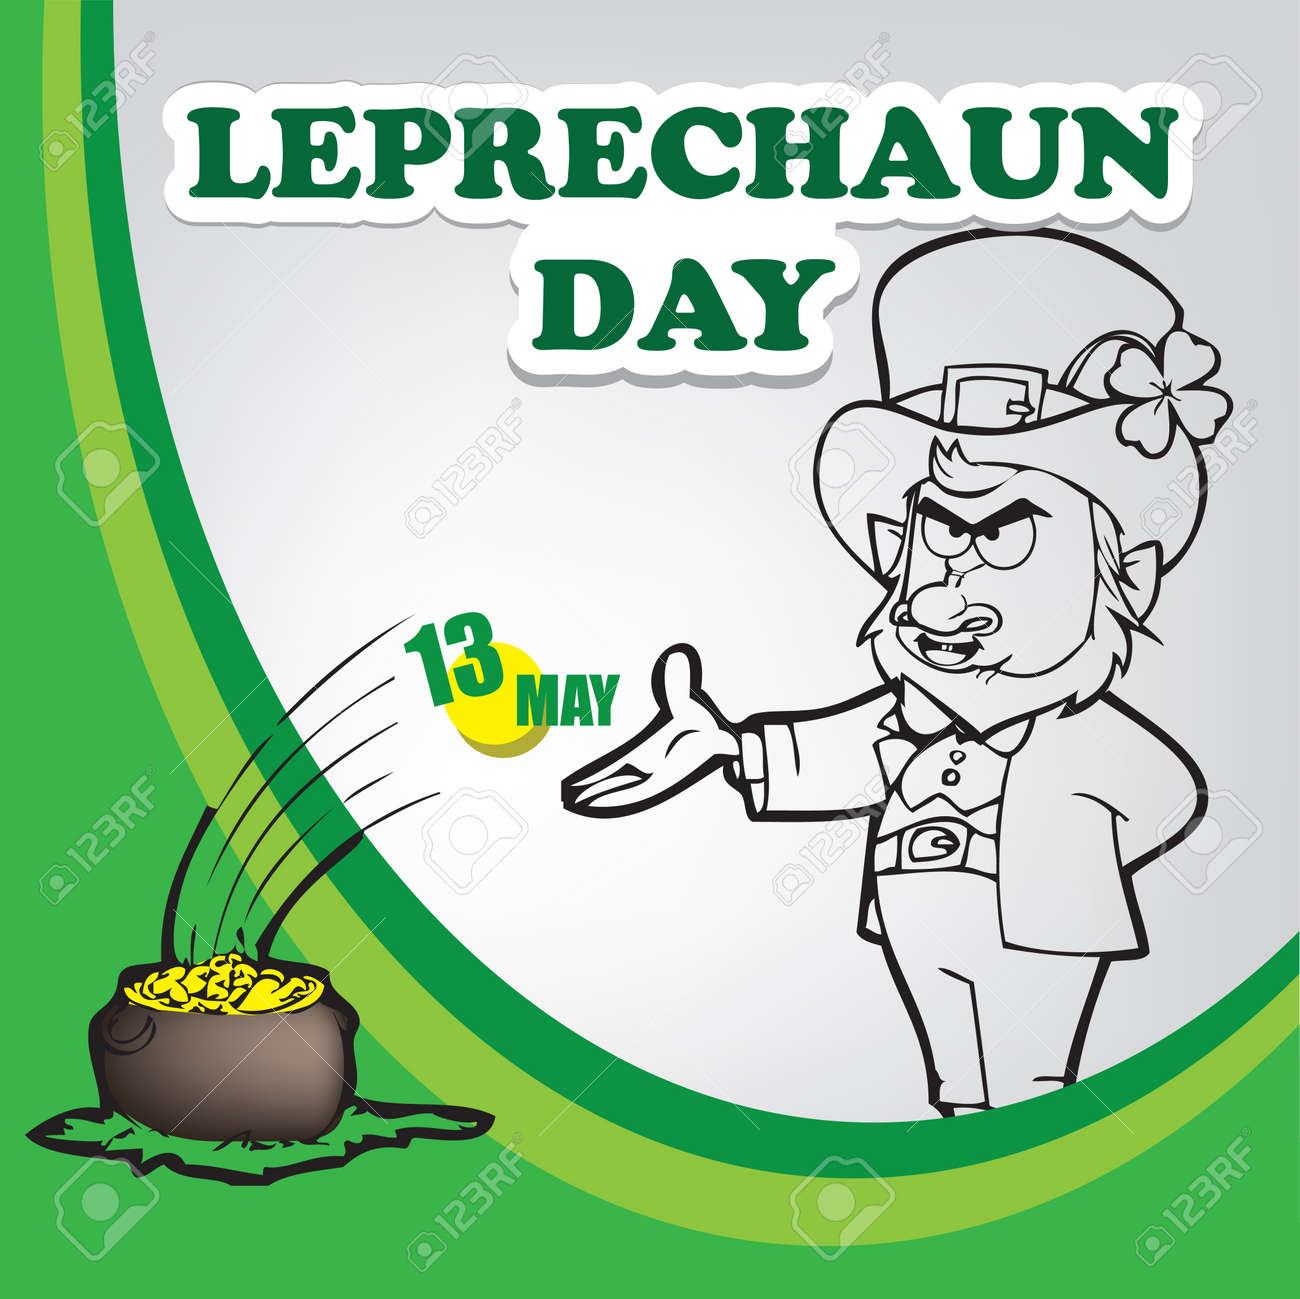 A festive event celebrated in May - Leprechaun Day - 169061373